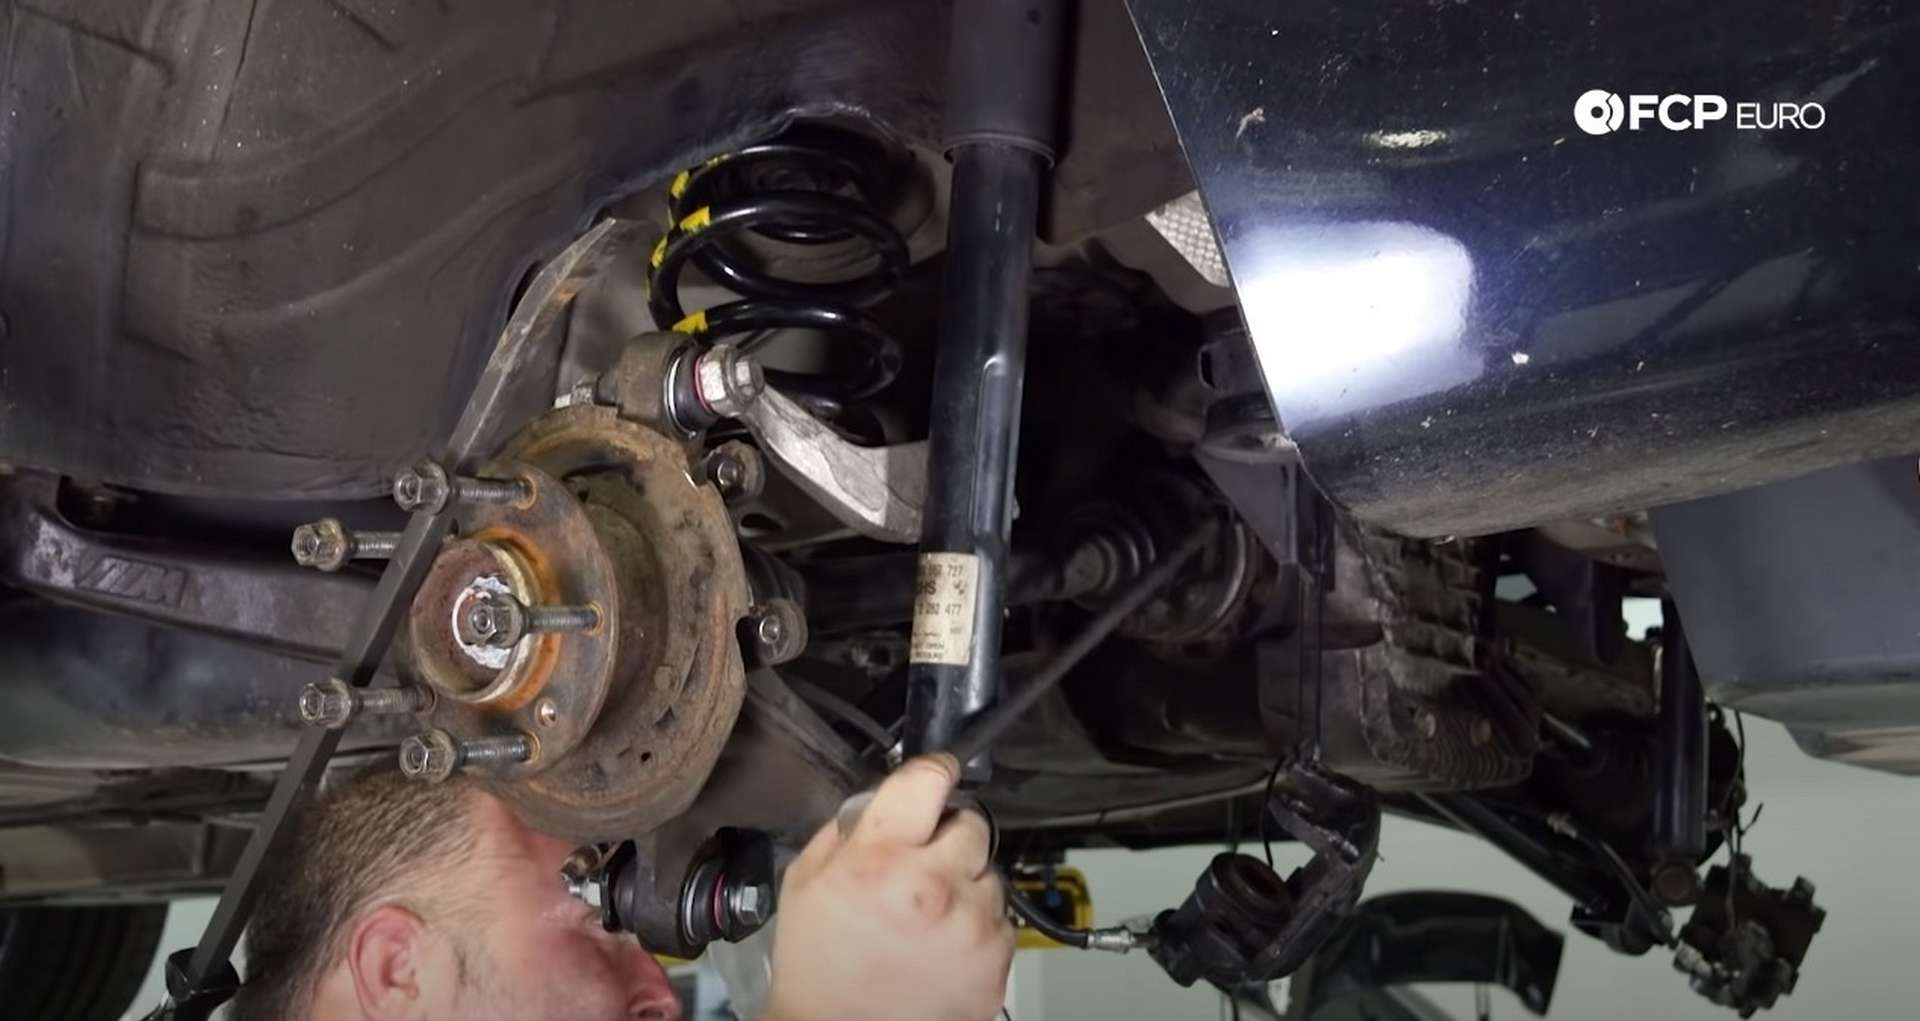 DIY E46 BMW M3 Rear Subframe Refresh Part 3 torquing the axle bolts